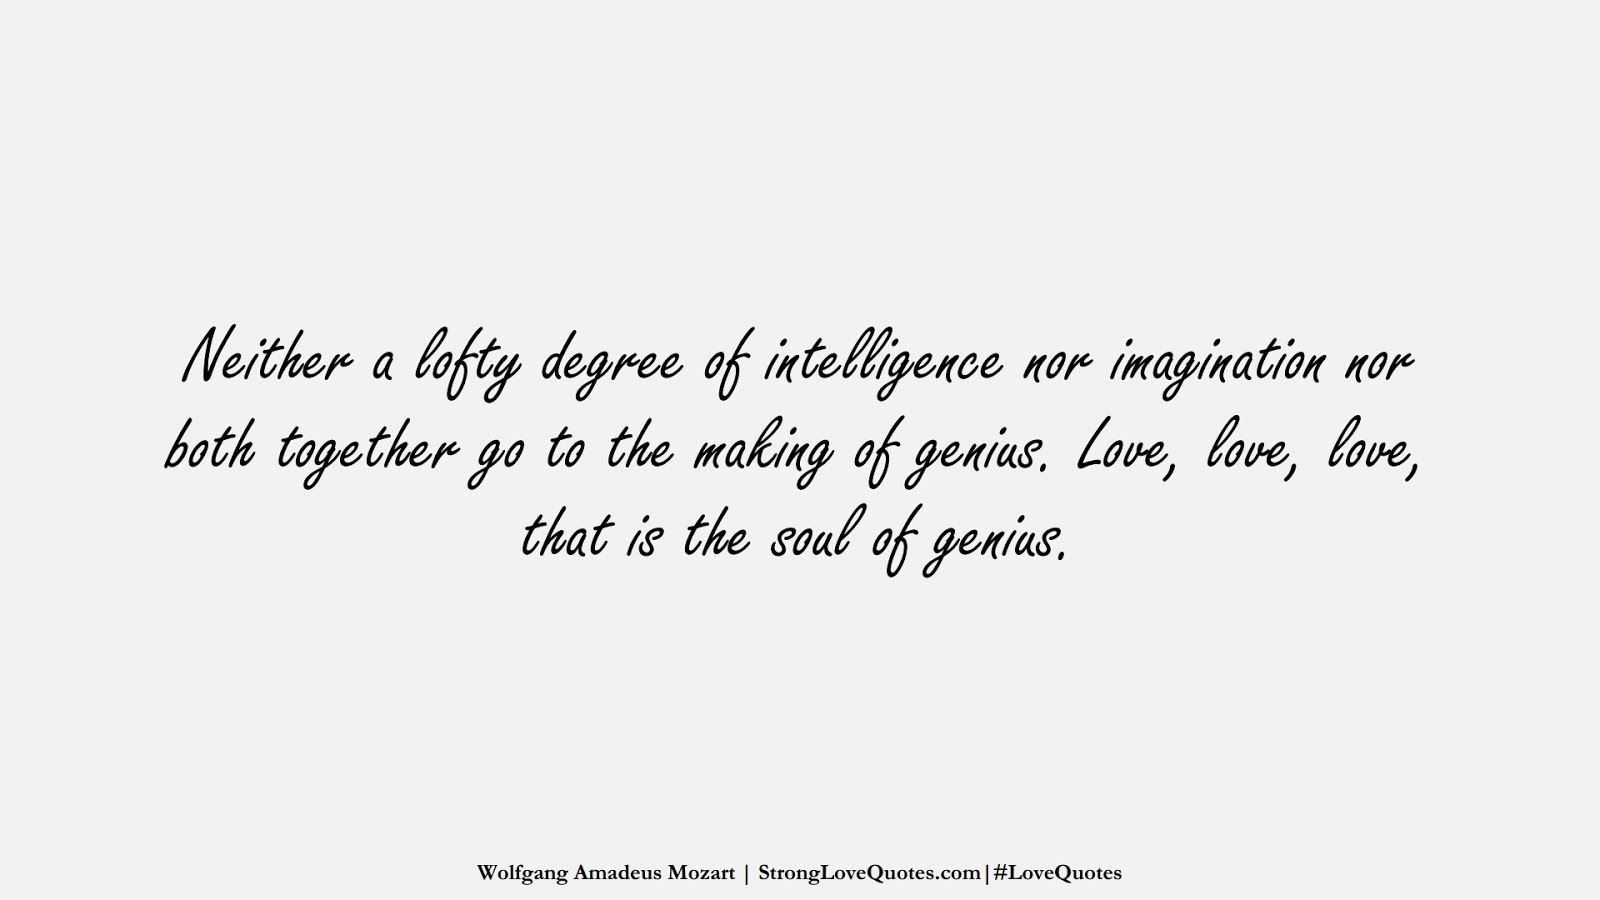 Neither a lofty degree of intelligence nor imagination nor both together go to the making of genius. Love, love, love, that is the soul of genius. (Wolfgang Amadeus Mozart);  #LoveQuotes